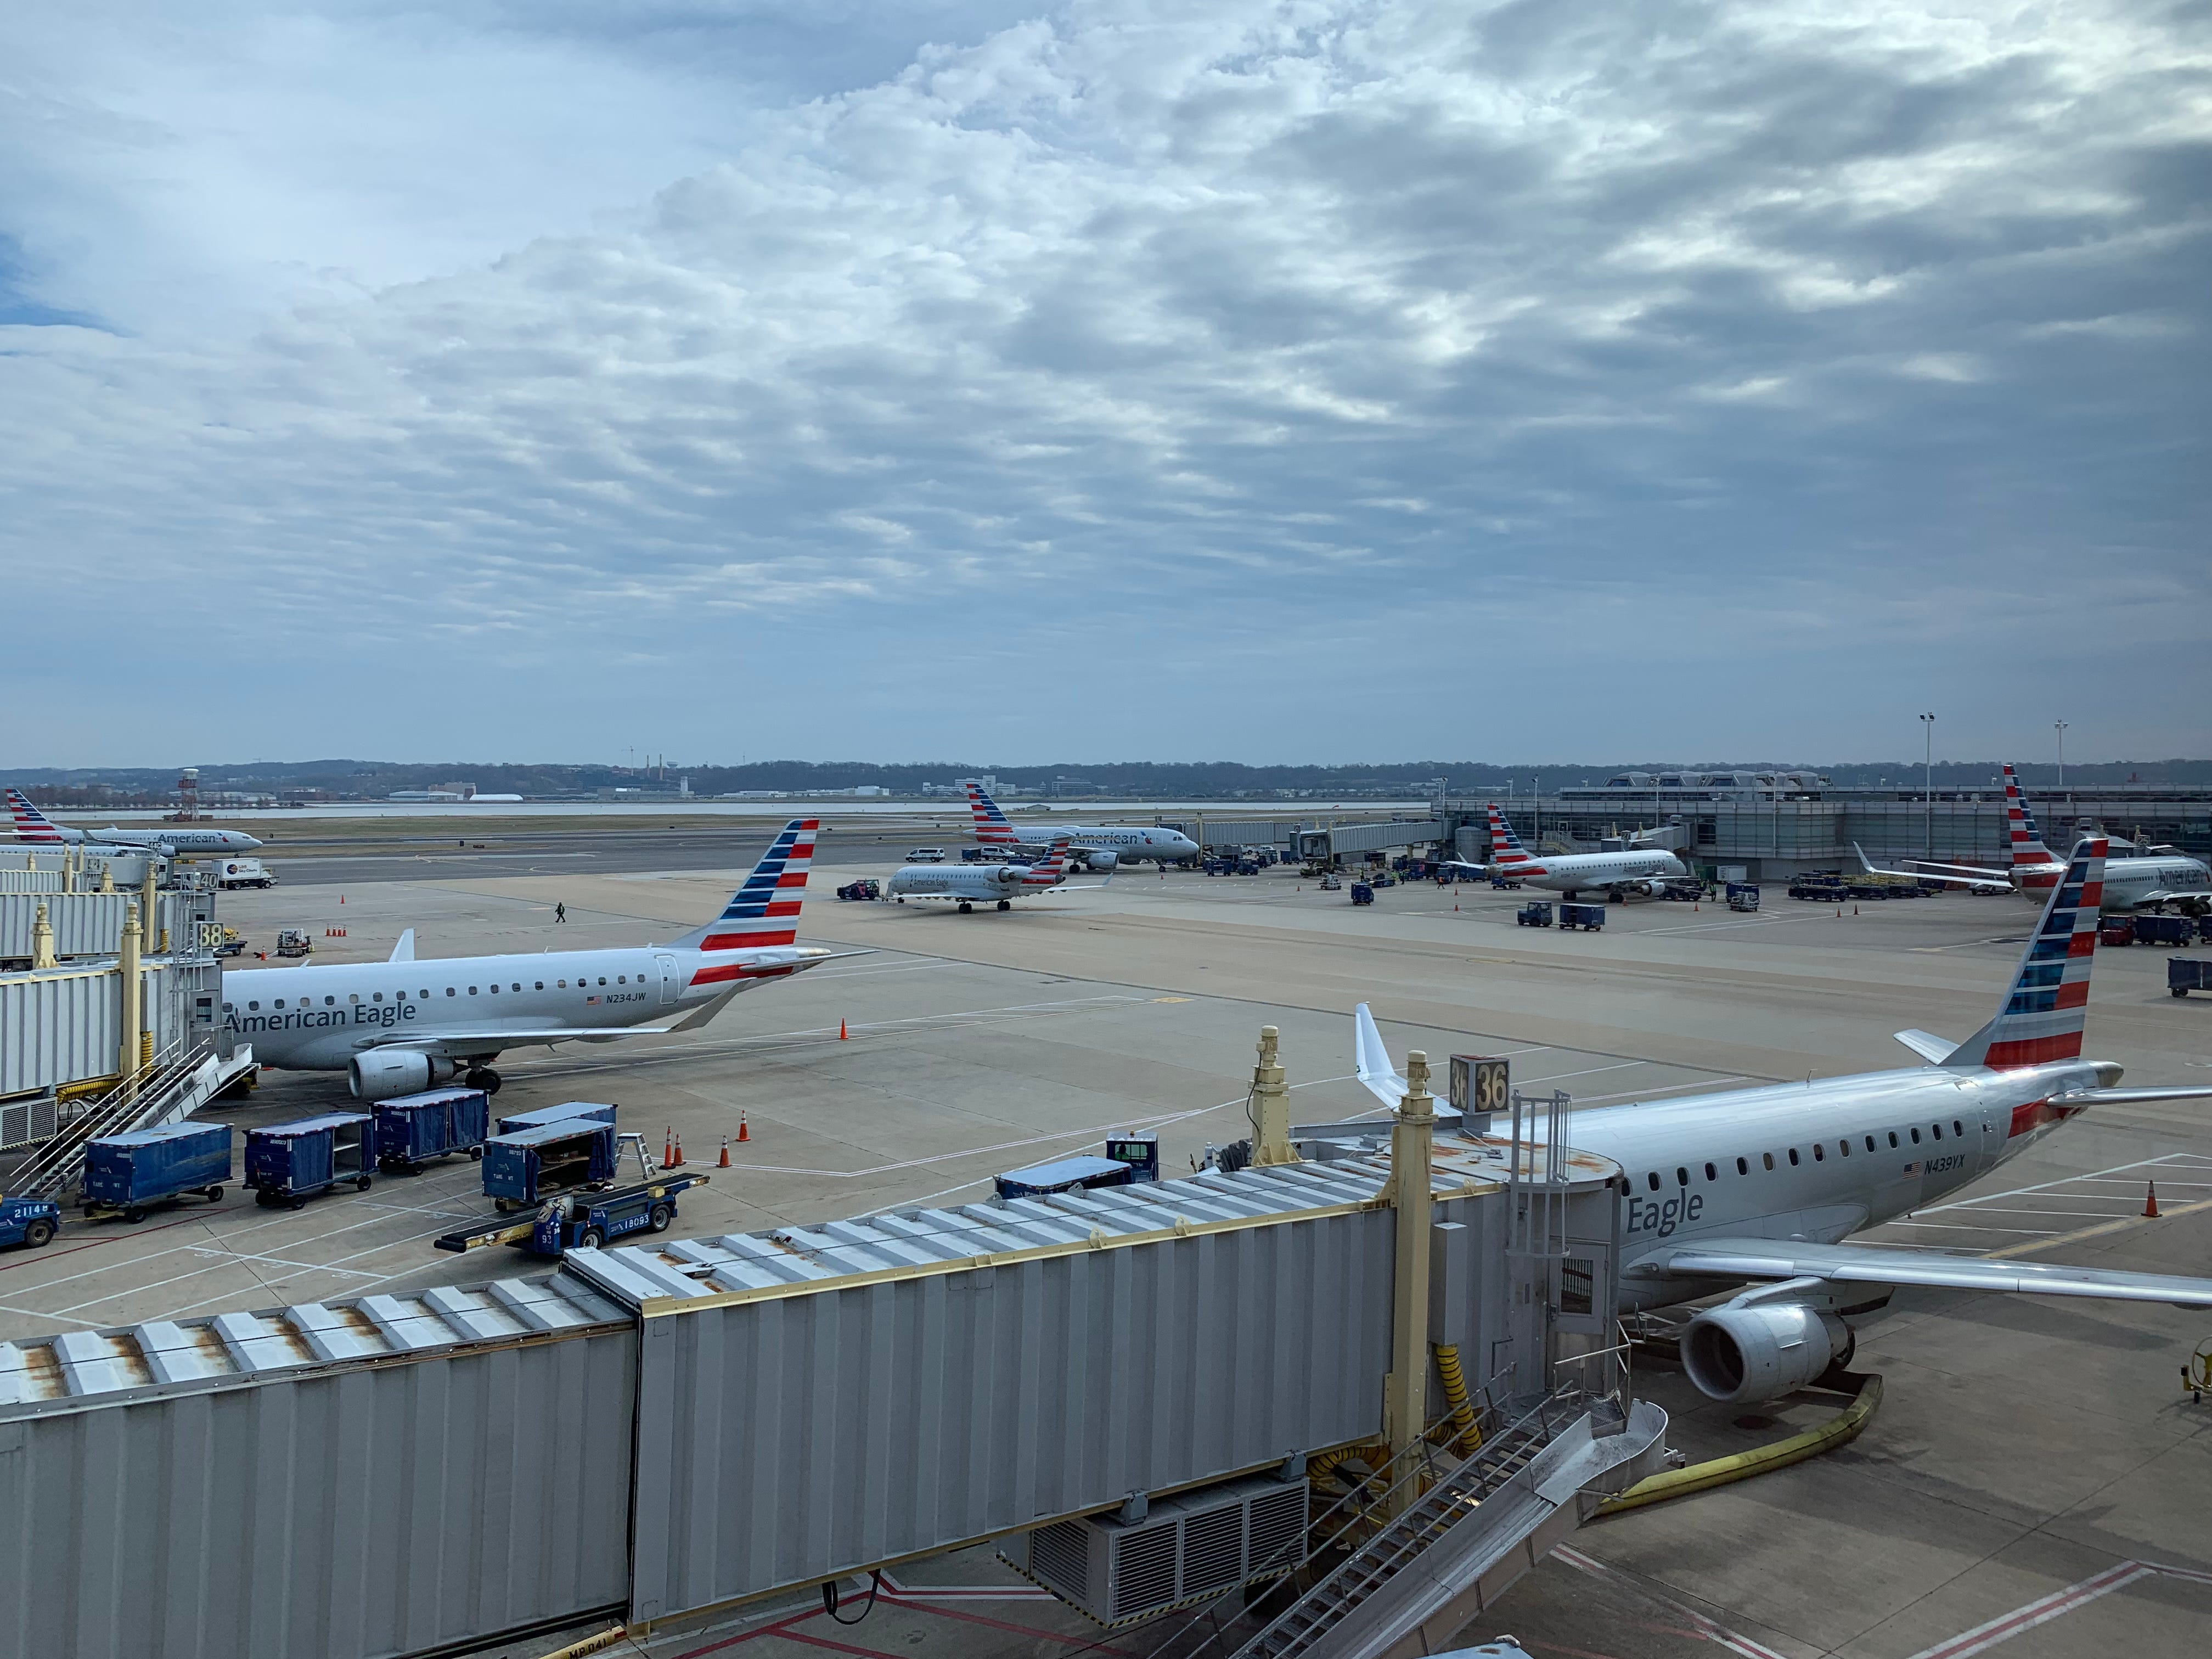 Gray skies hold over a lineup of American Airlines planes at Washington Reagan National Airport on Dec. 30, 2018.